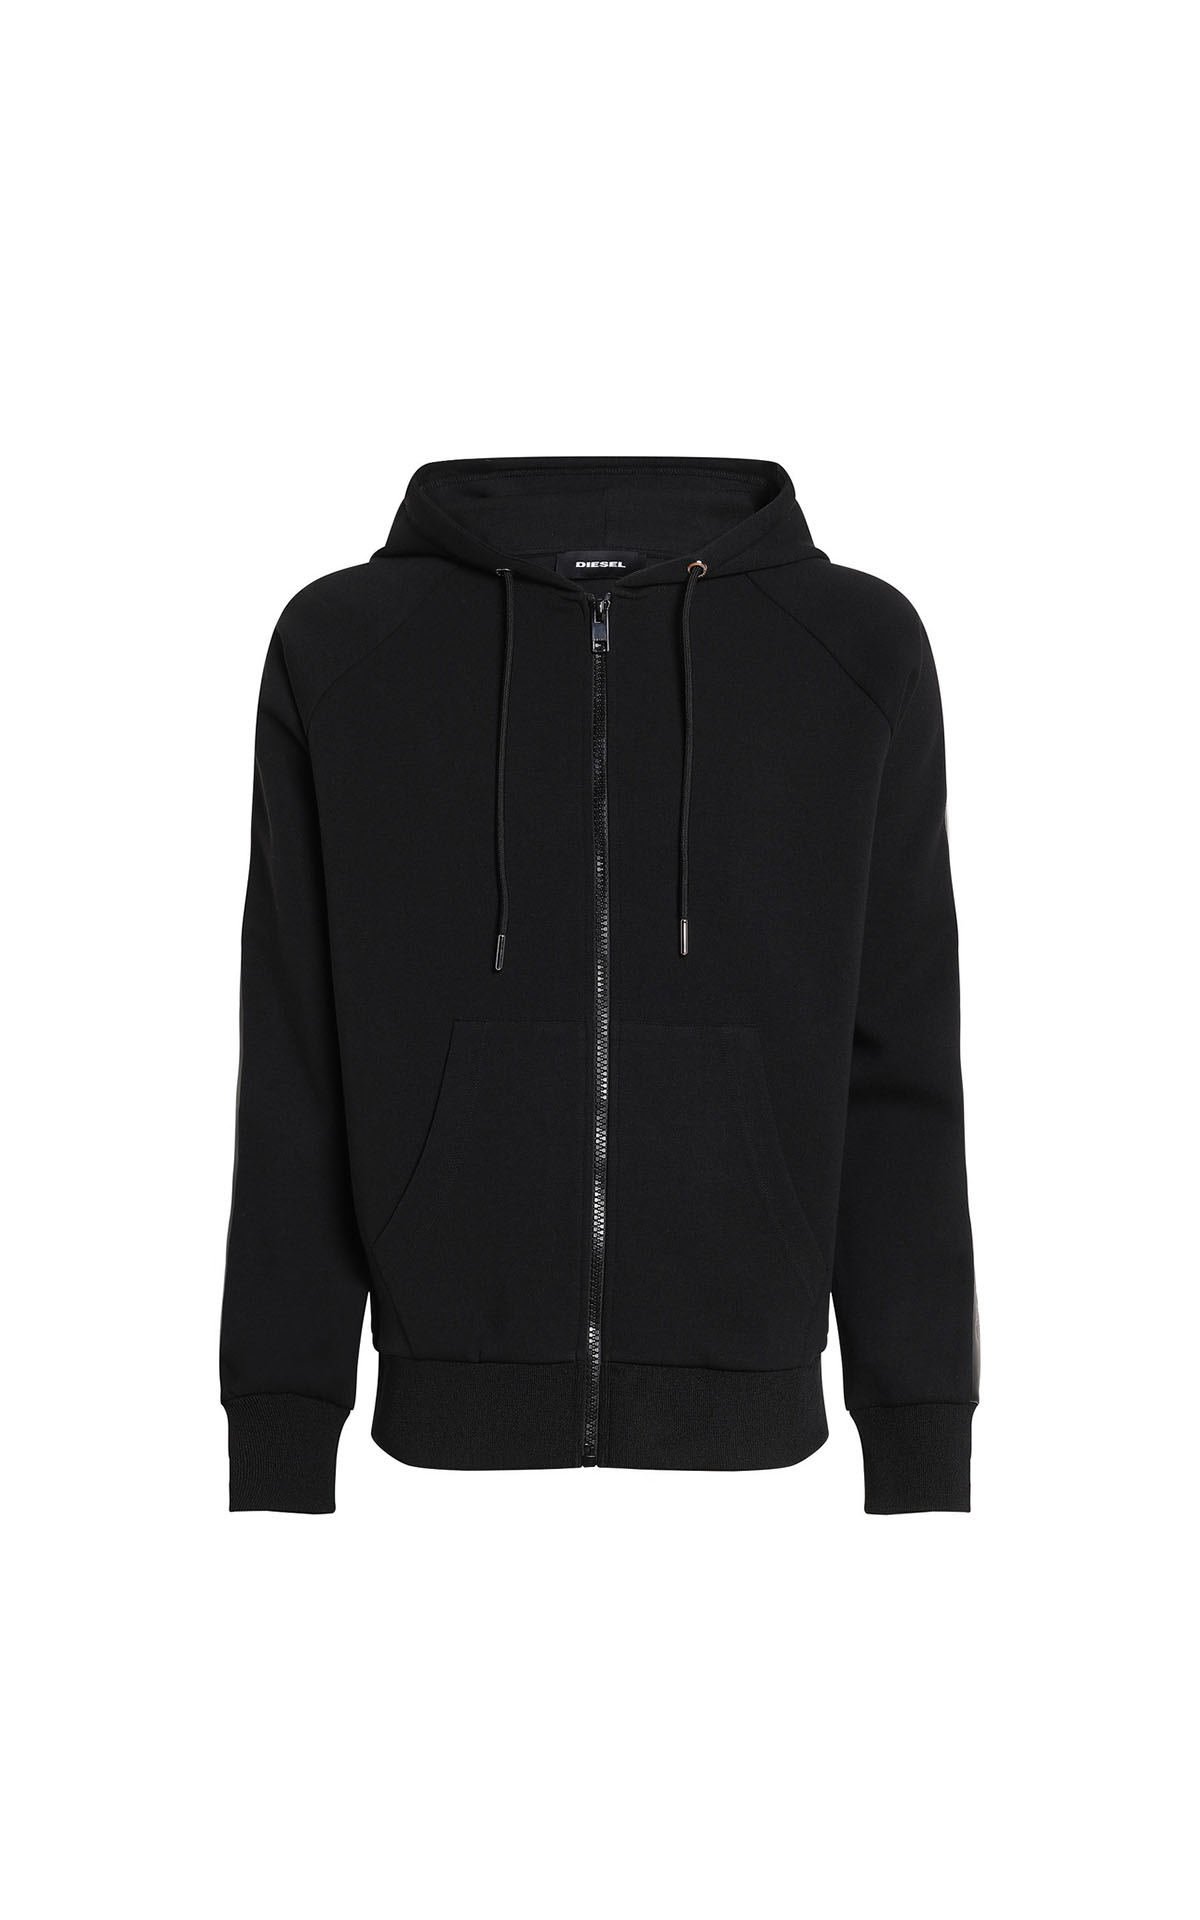 Diesel zip up hoodie with tonal tapes at The Bicester Village Shopping Collection